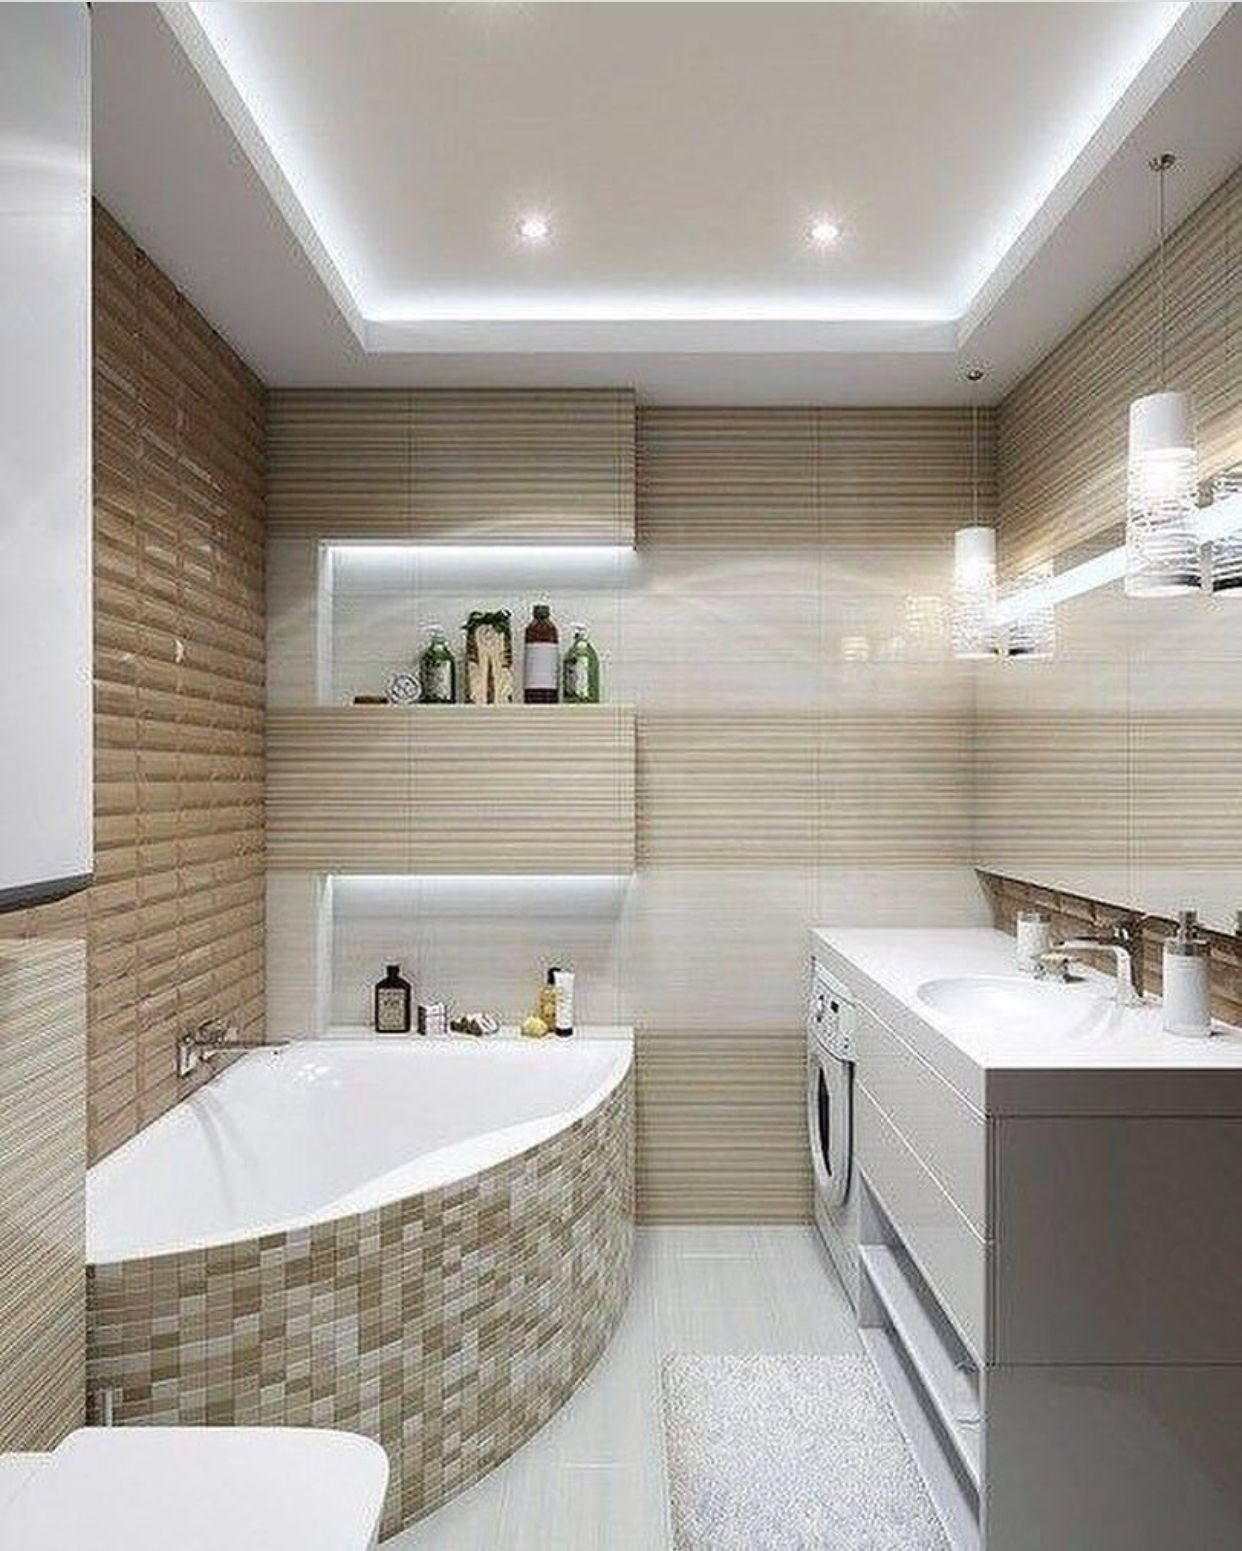 Beautiful Living Rooms On A Budget That Look Expensive: 65 Most Popular Small Bathroom Remodel Ideas On A Budget